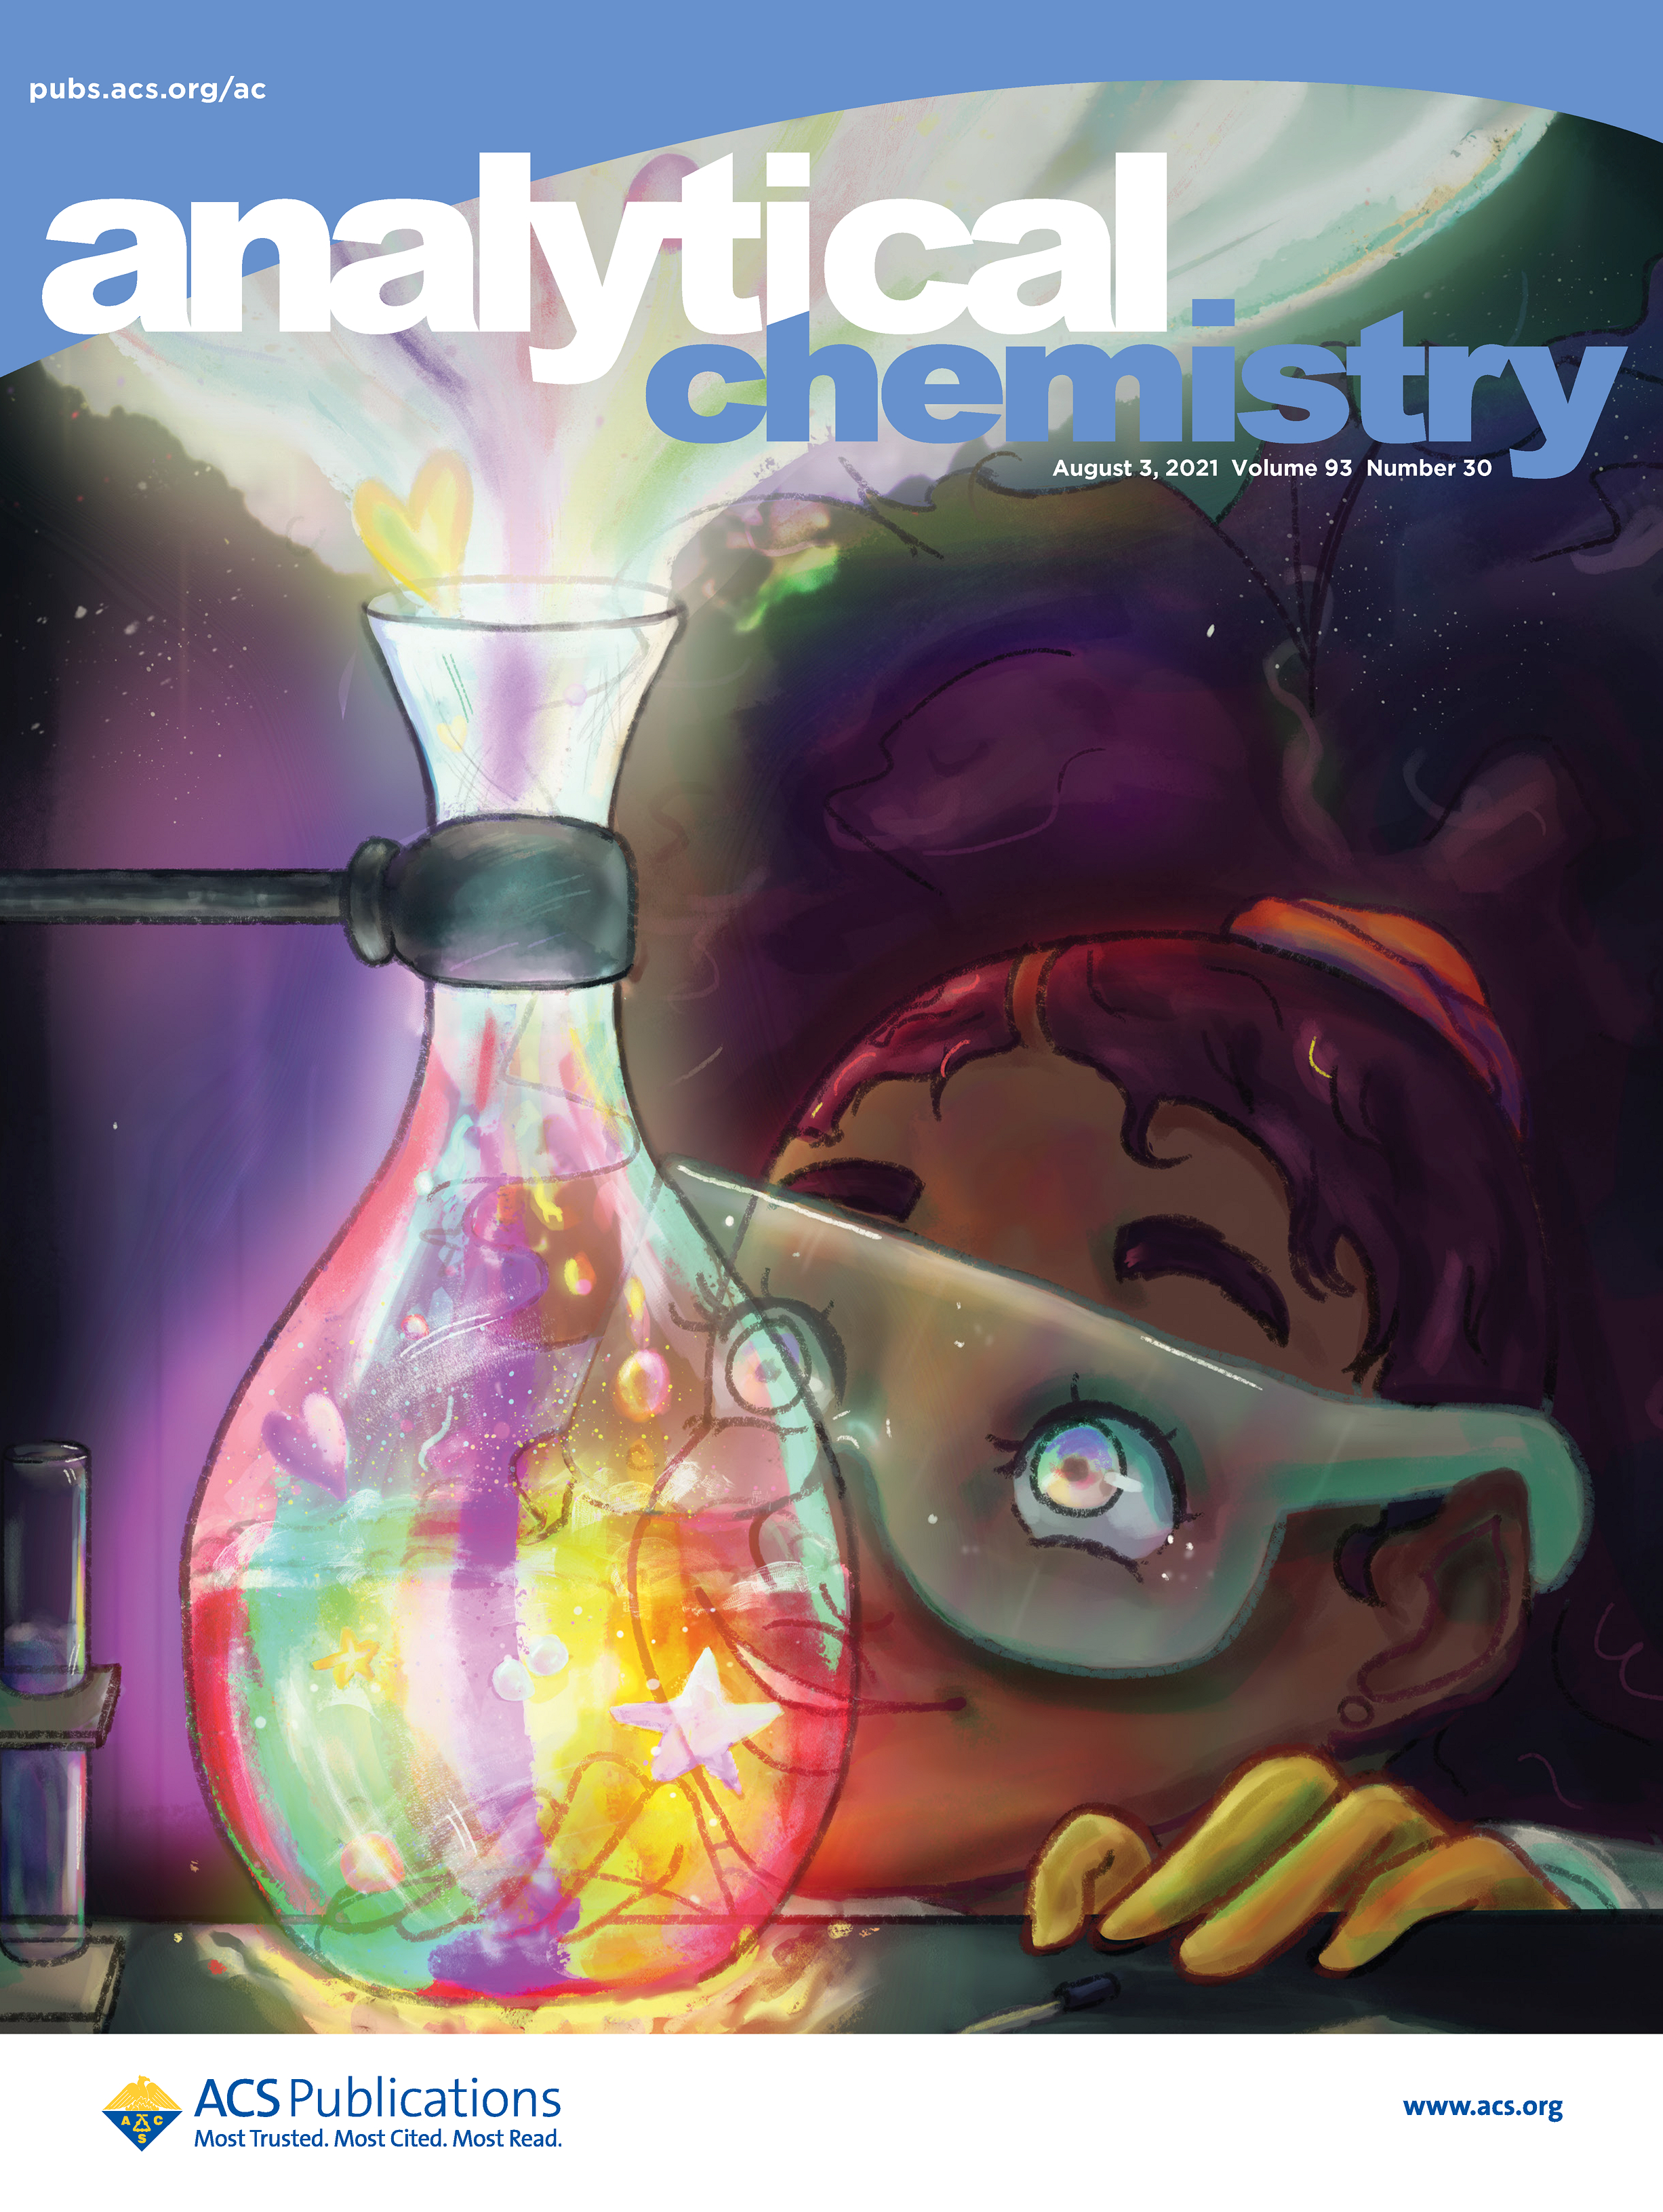 Digital painting of a smiling Black girl wearing safety goggles and gazing eagerly at a chemistry flask full of bright colors.